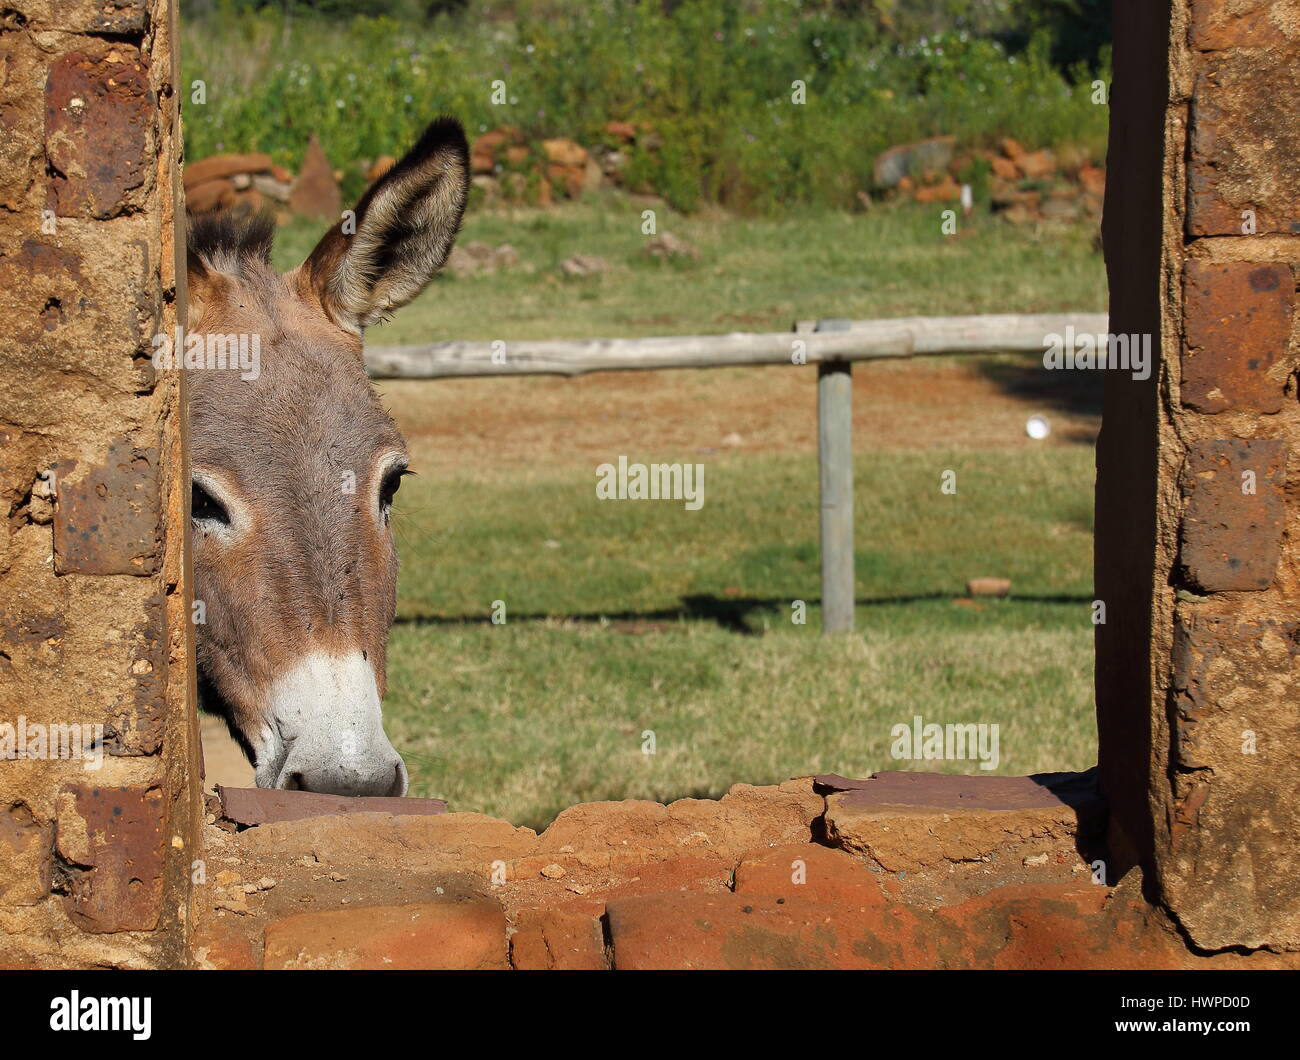 A small grey donkey peeks through the window of a run down old abandoned stable Stock Photo